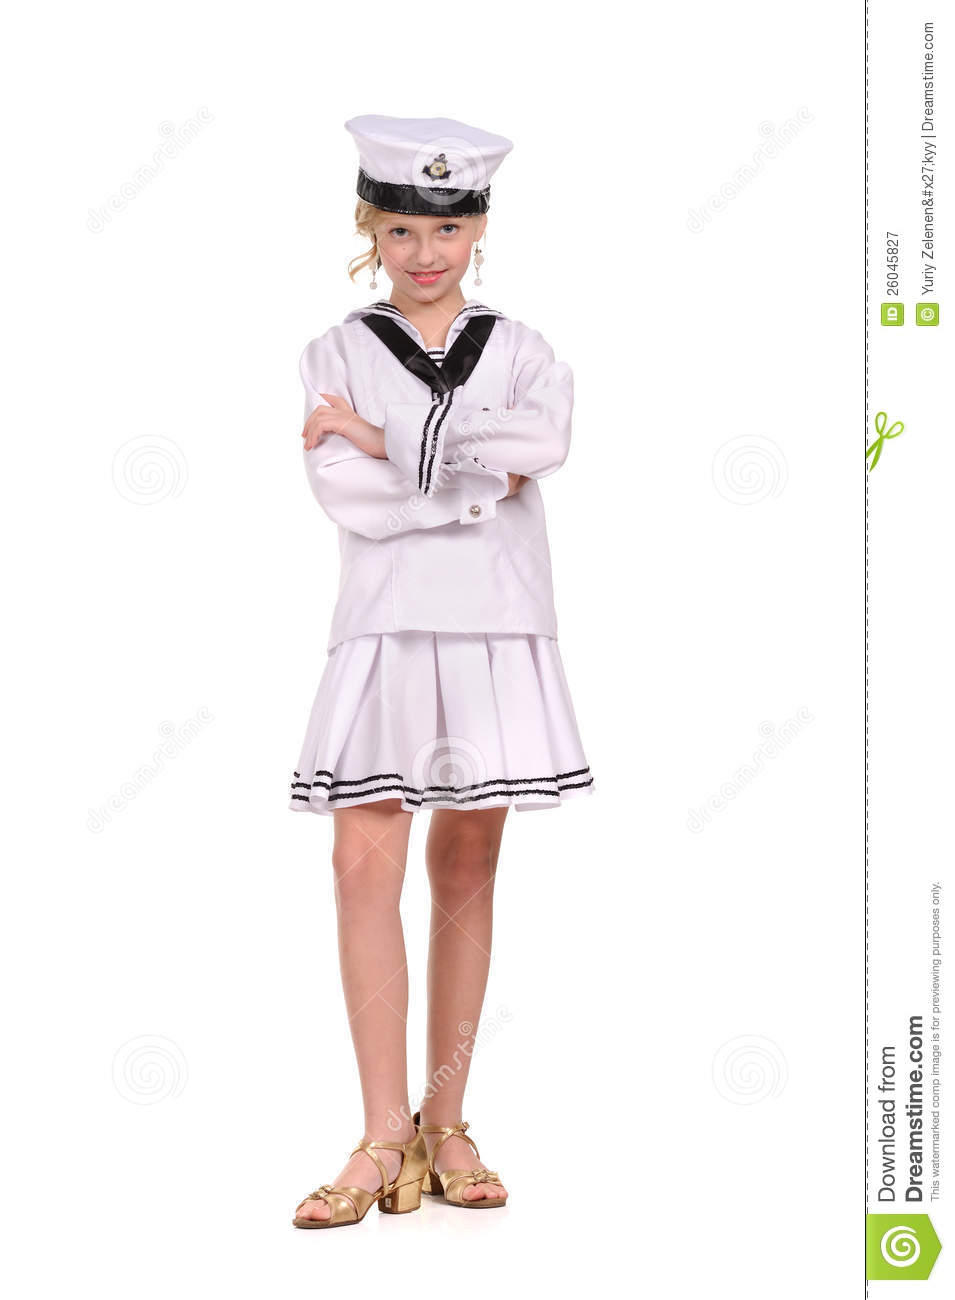 Find great deals on eBay for sailor suit. Shop with confidence.